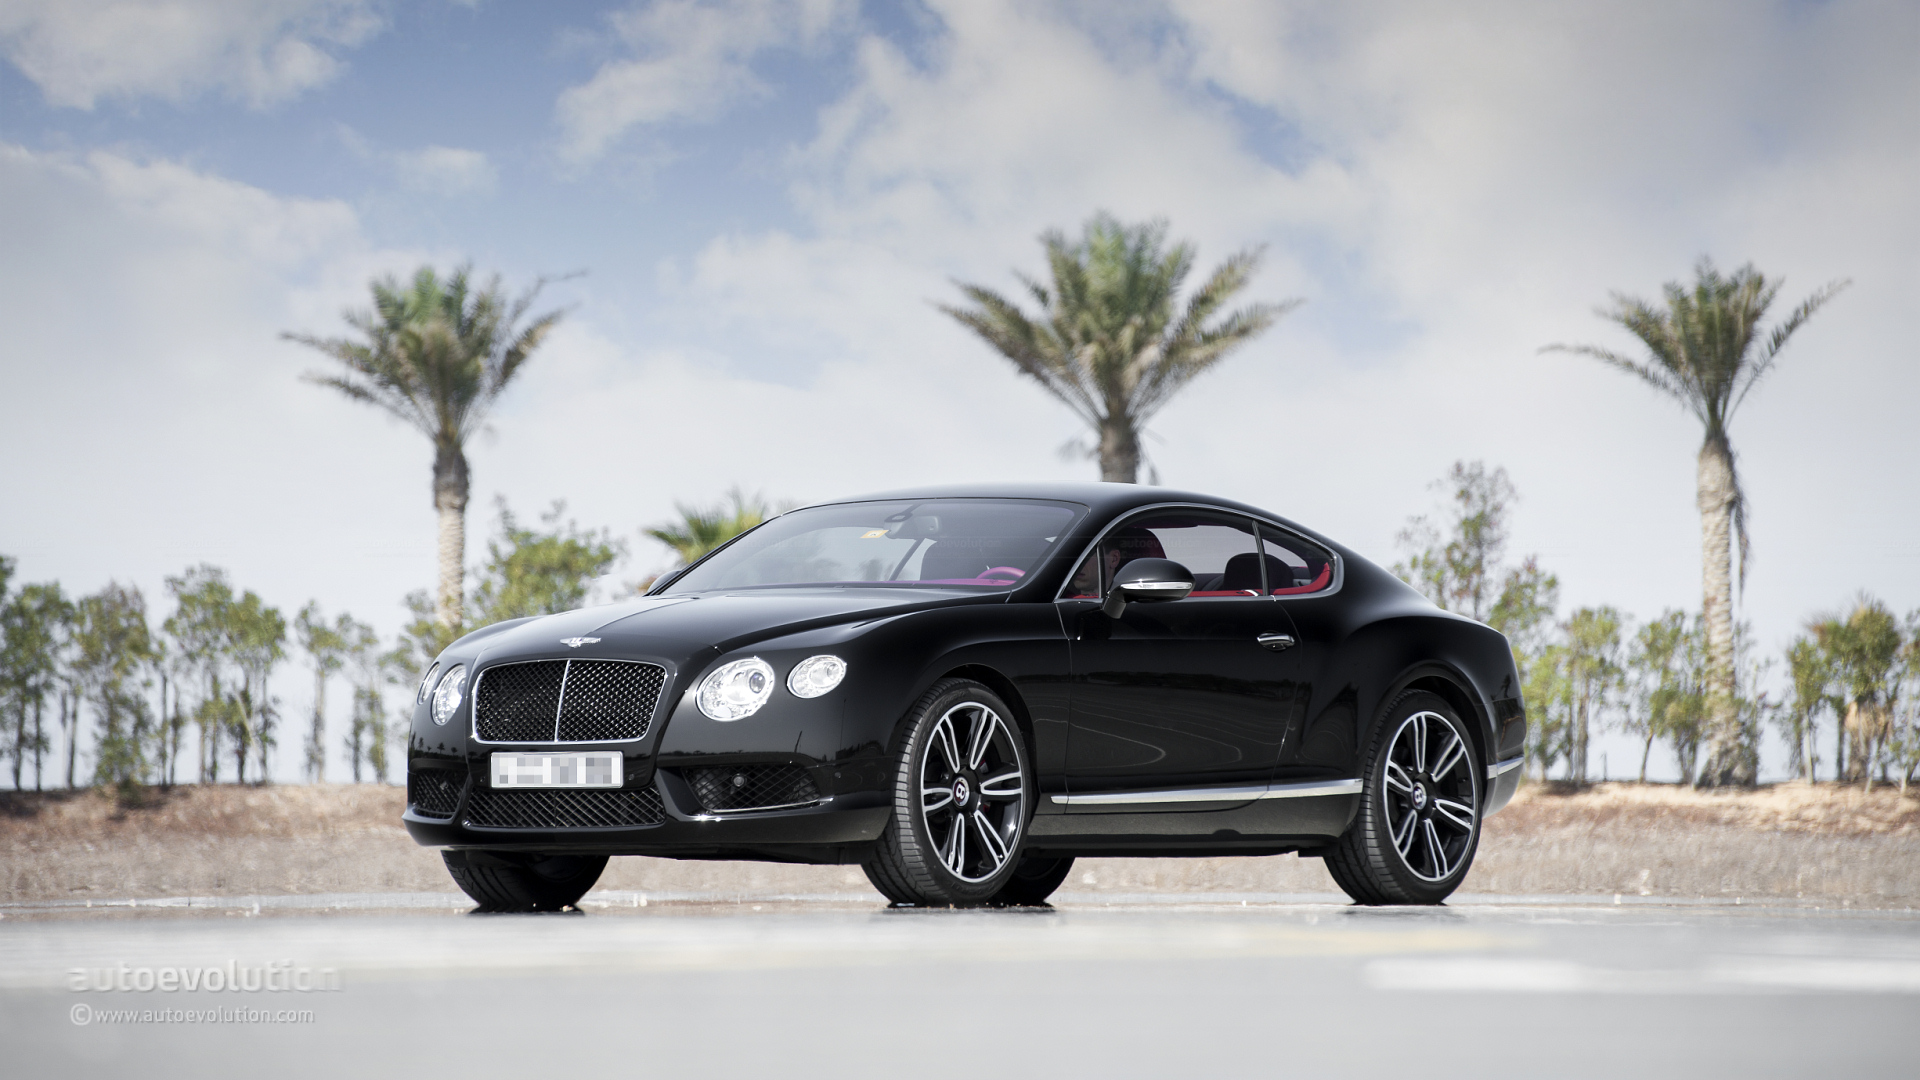 New Bentley Continental Coming In 2017 With Porsche